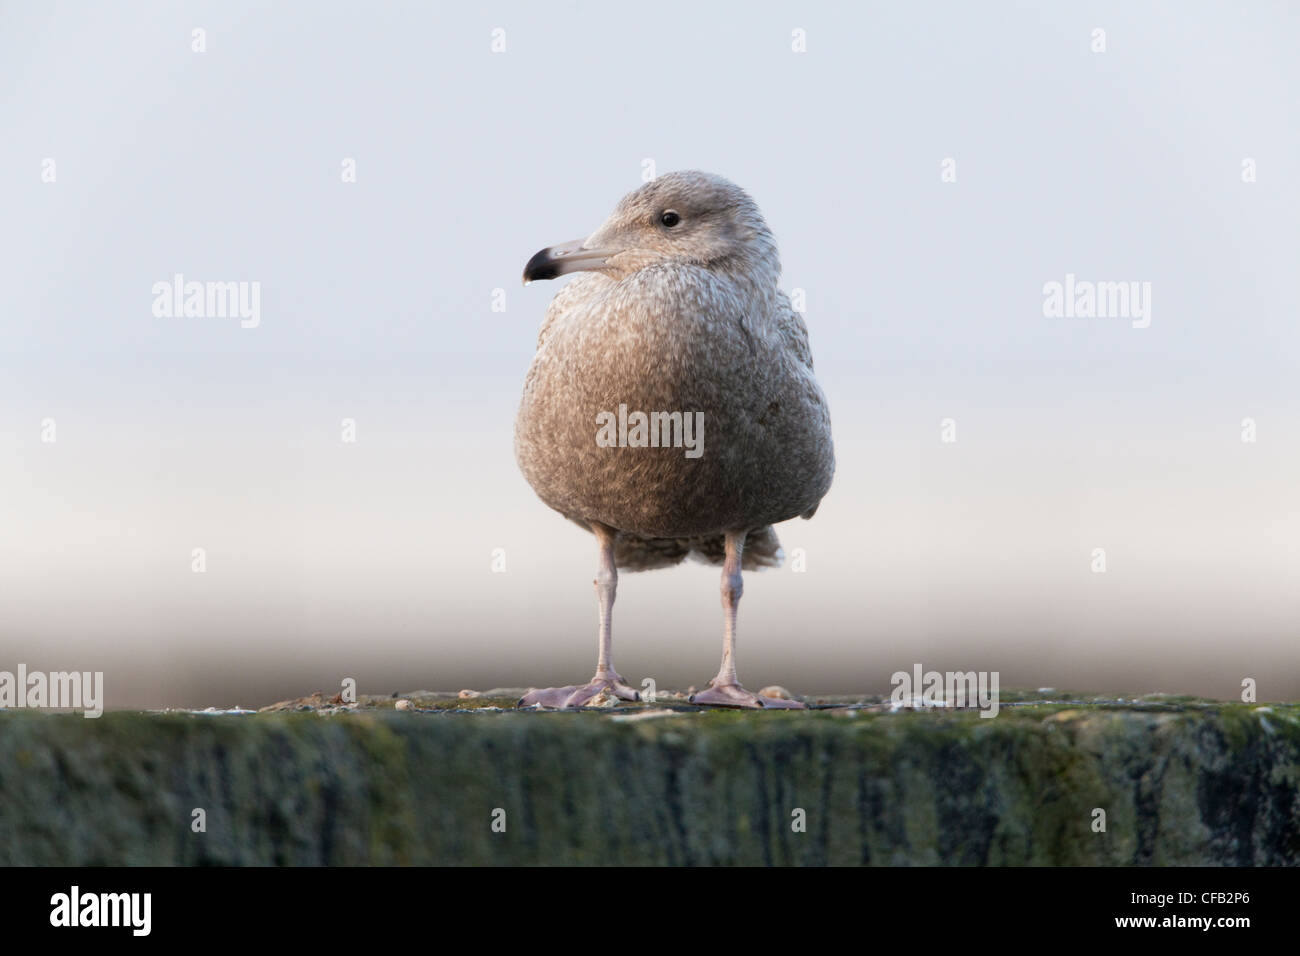 Glaucous Gull Larus hyperboreus immature 1st winter plumage perched on harbour wall - Stock Image